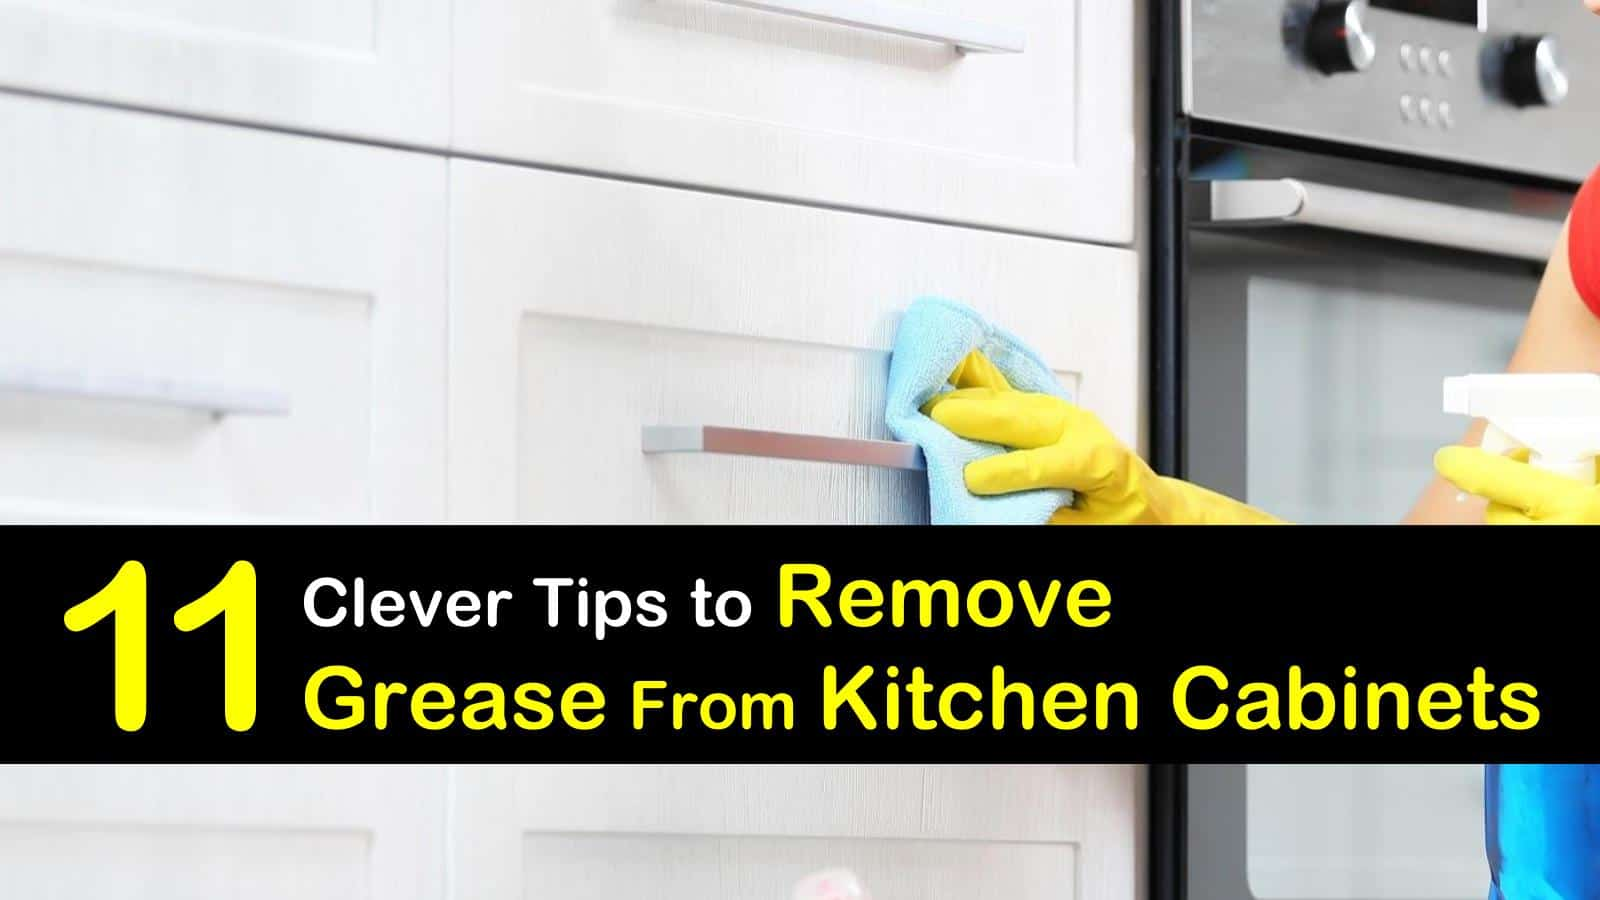 Remove Grease From Kitchen Cabinets 11 Clever Ways to Remove Grease from Kitchen Cabinets